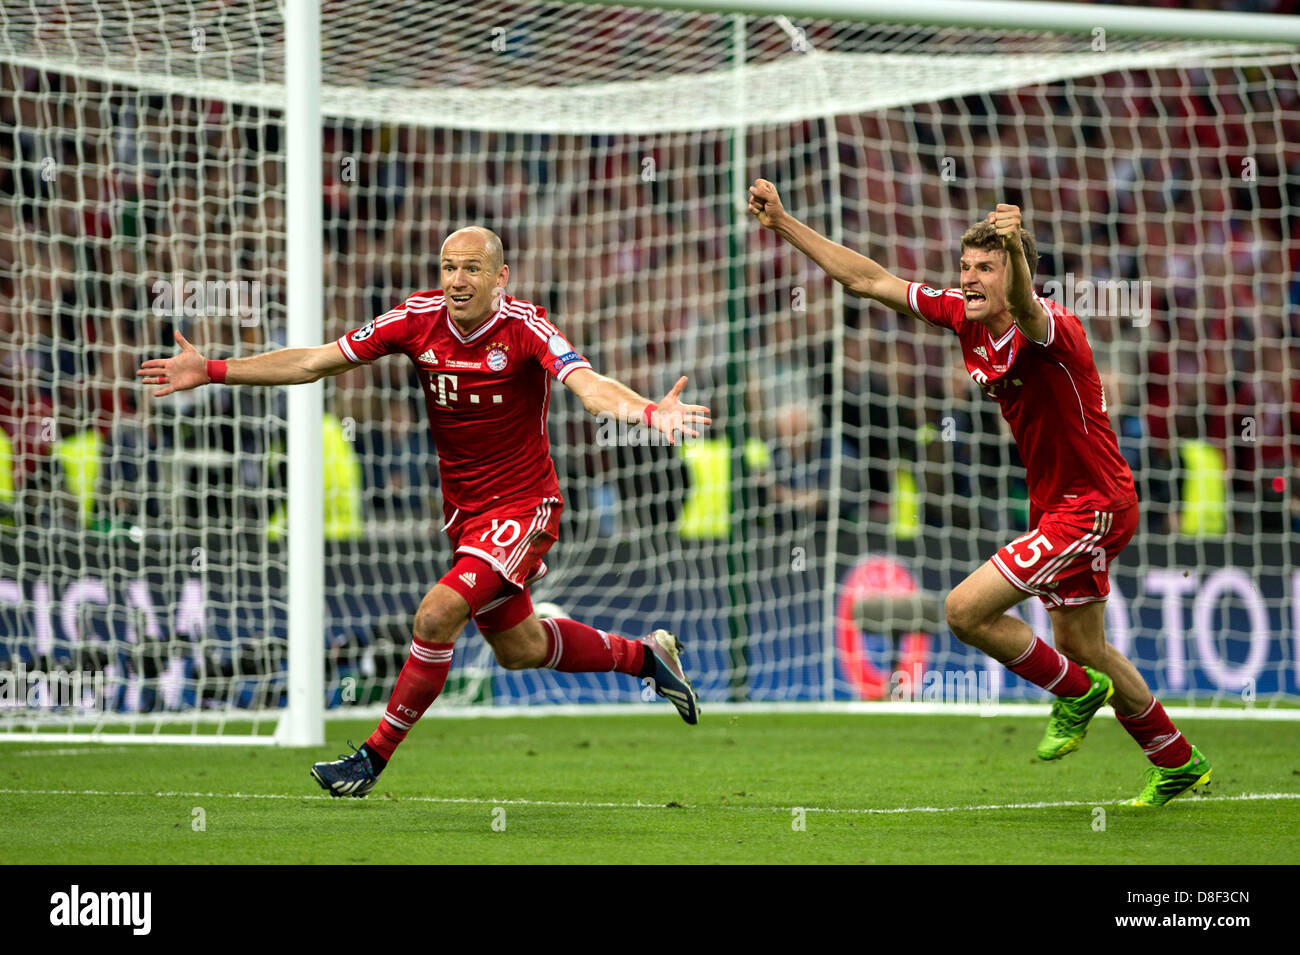 L r arjen robben thomas muller bayern may 25 2013 football l r arjen robben thomas muller bayern may 25 2013 football soccer arjen robben of bayern munich celebrates scoring his side second goal during voltagebd Choice Image